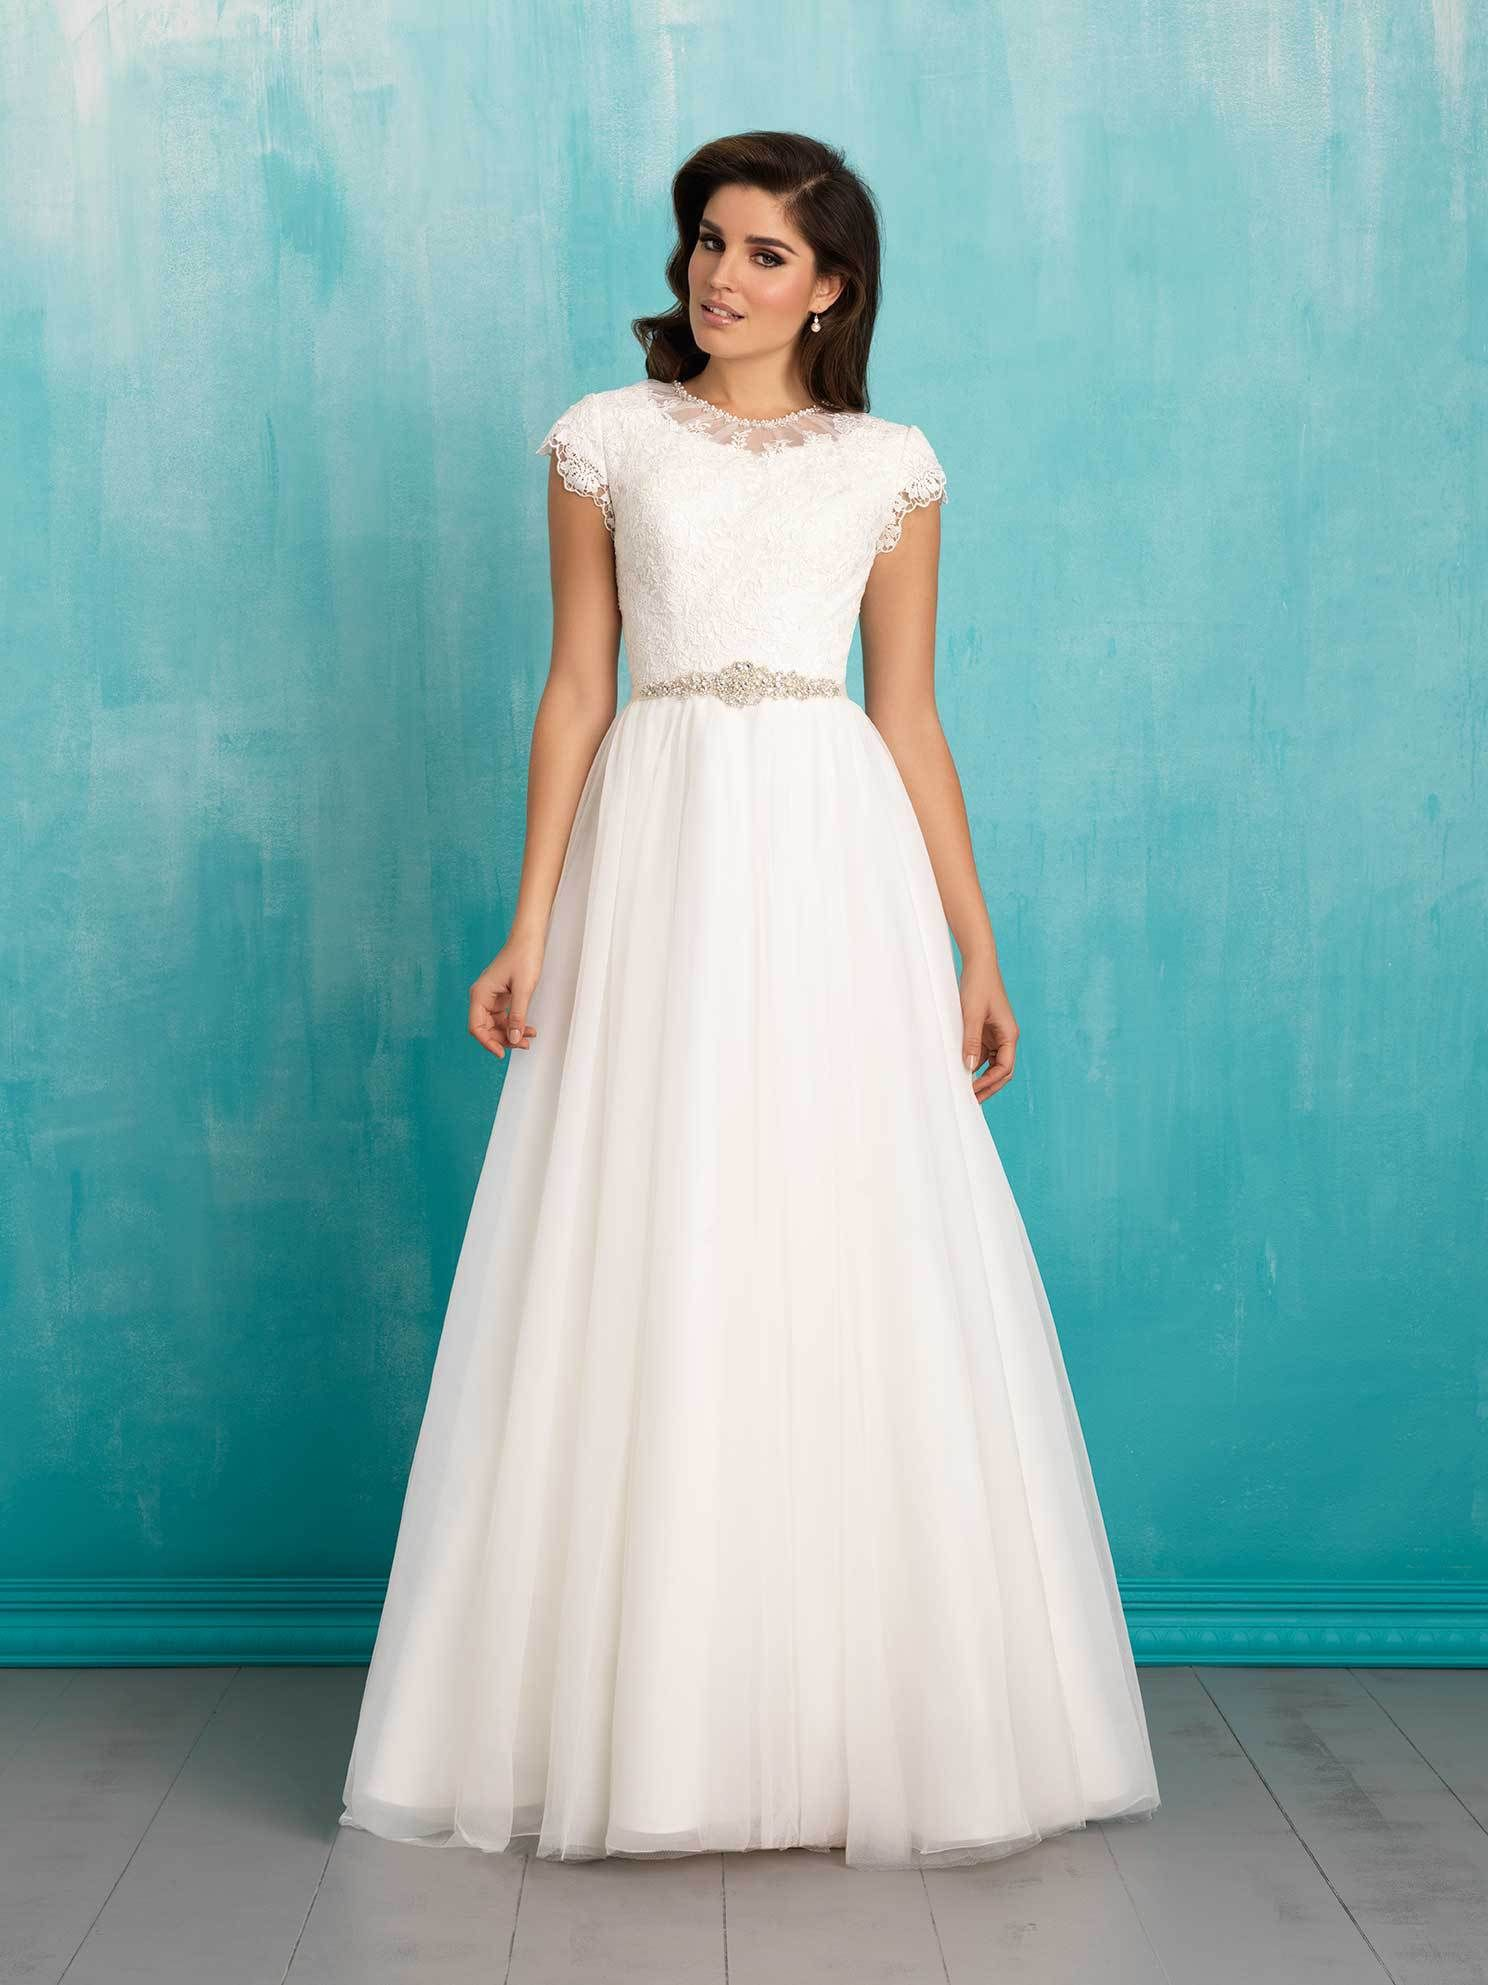 25 Modest Wedding Dresses with Short Sleeves | LDS Wedding | Wedding ...